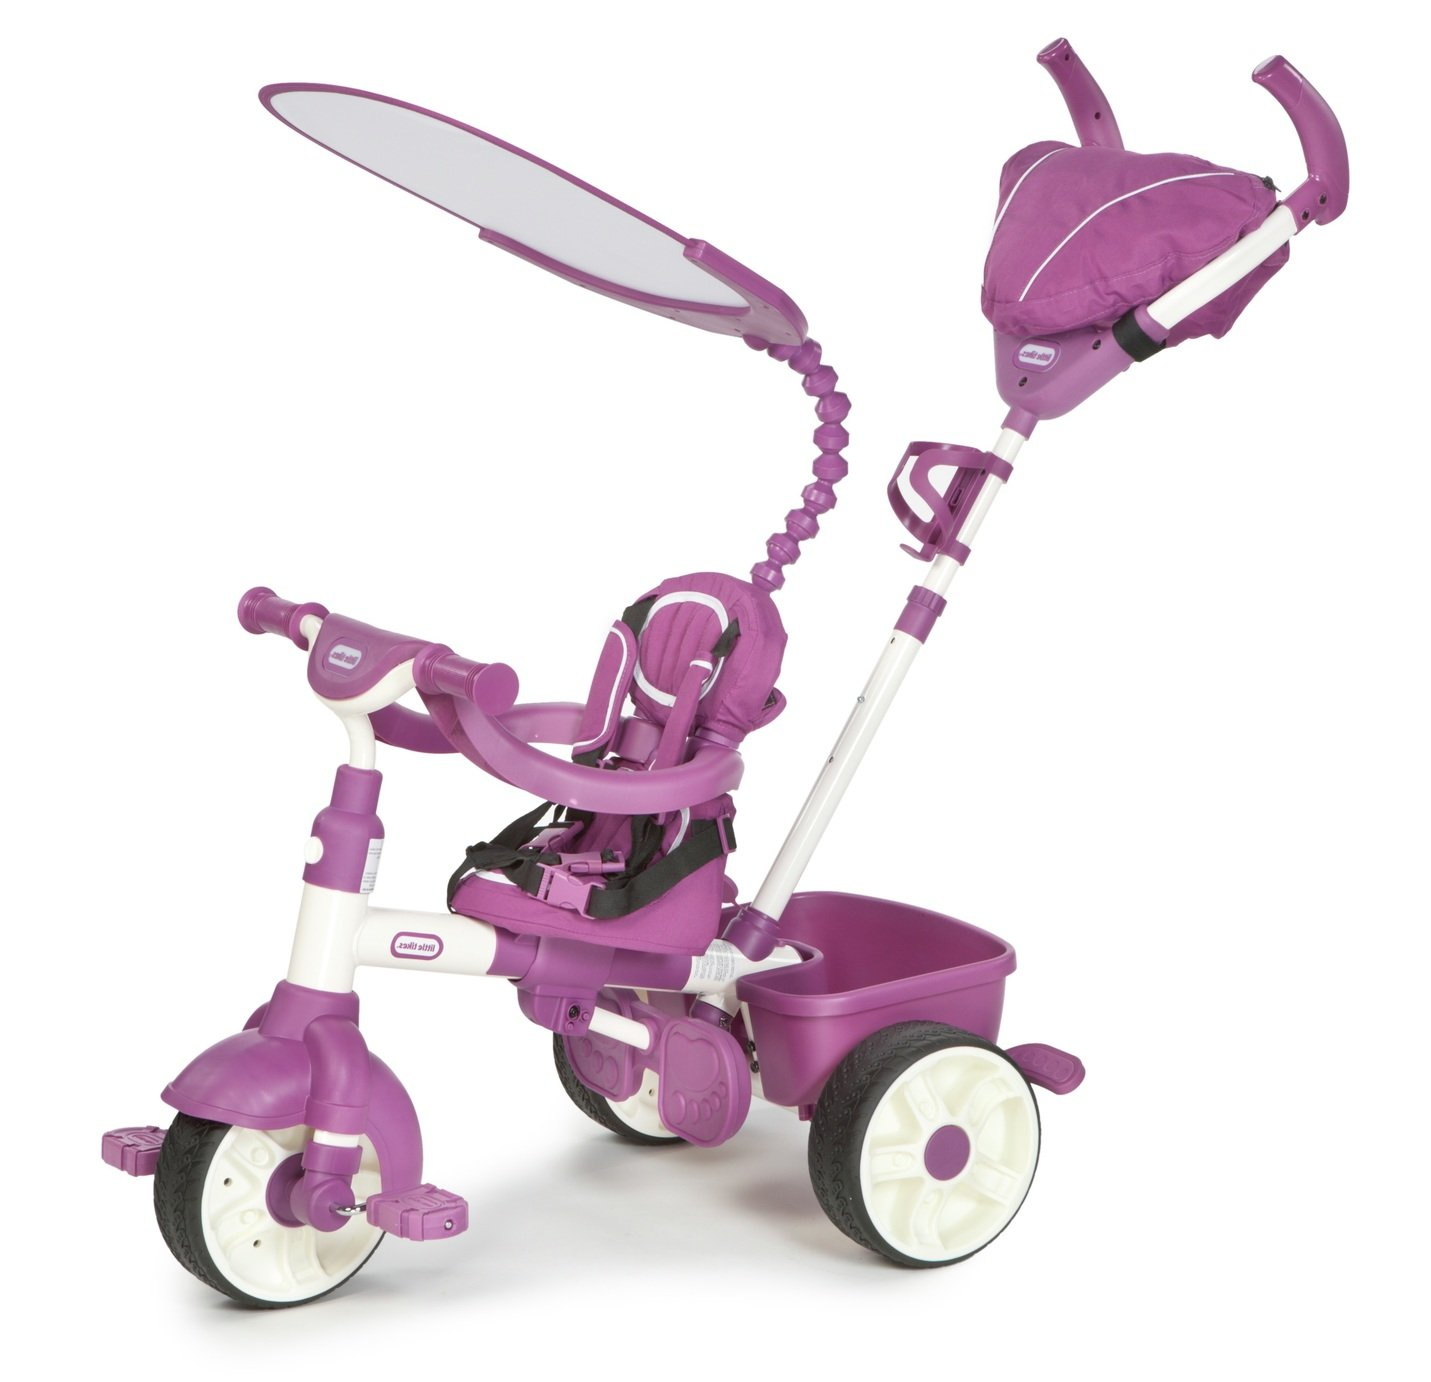 Image of Little Tikes 4-in-1 Sports Edition Trike - Pink/ White